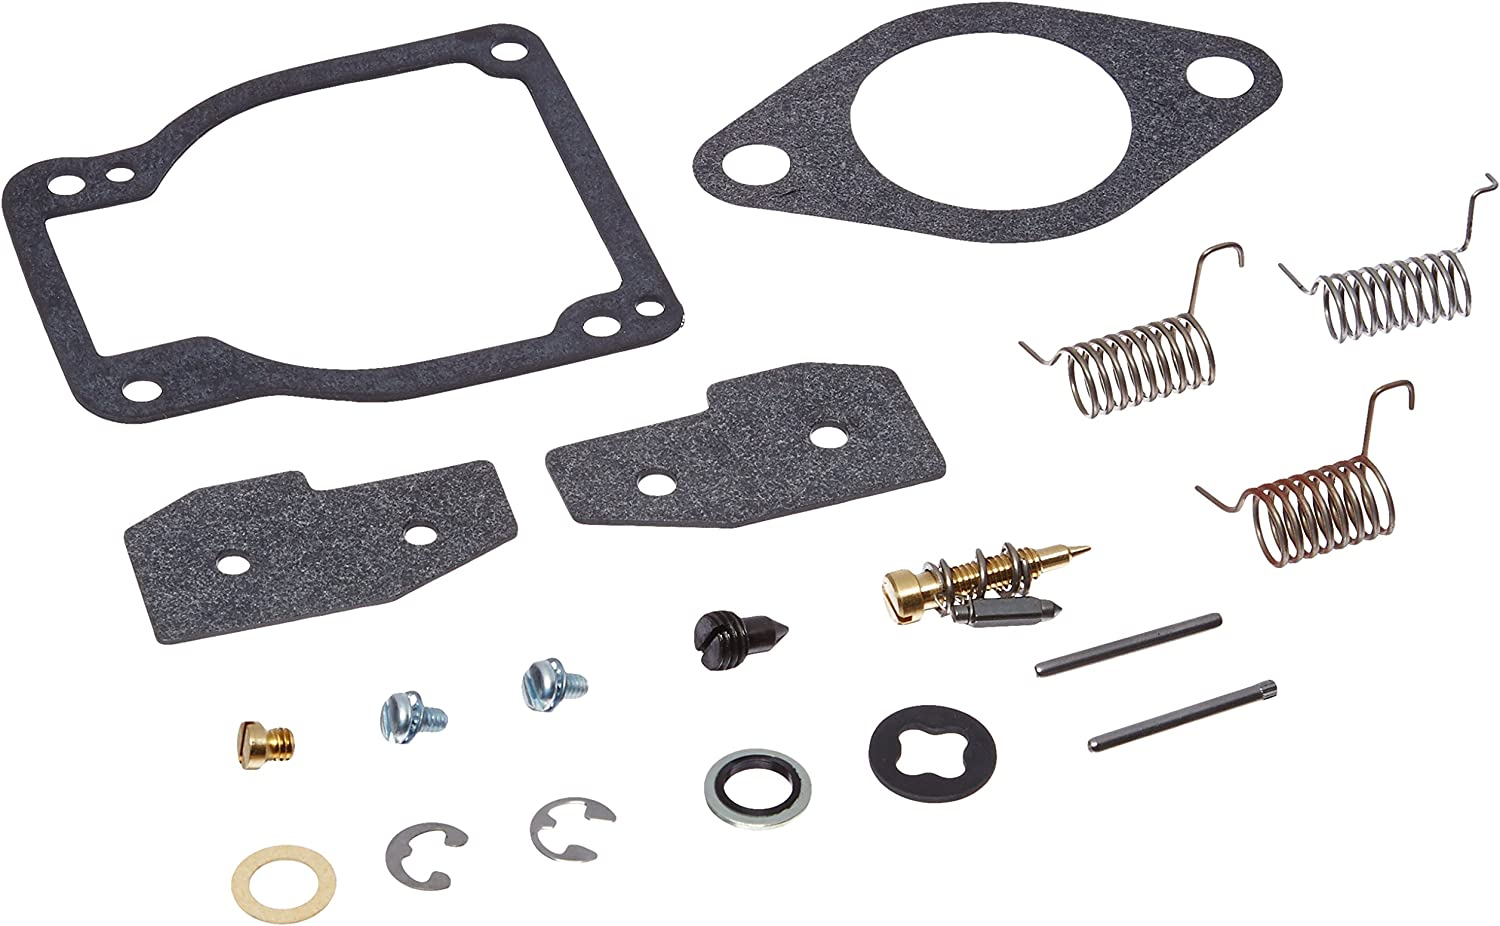 Sierra International 18-7750-1 Marine Carburetor Kit for Mercury/Mariner Outboard Motor